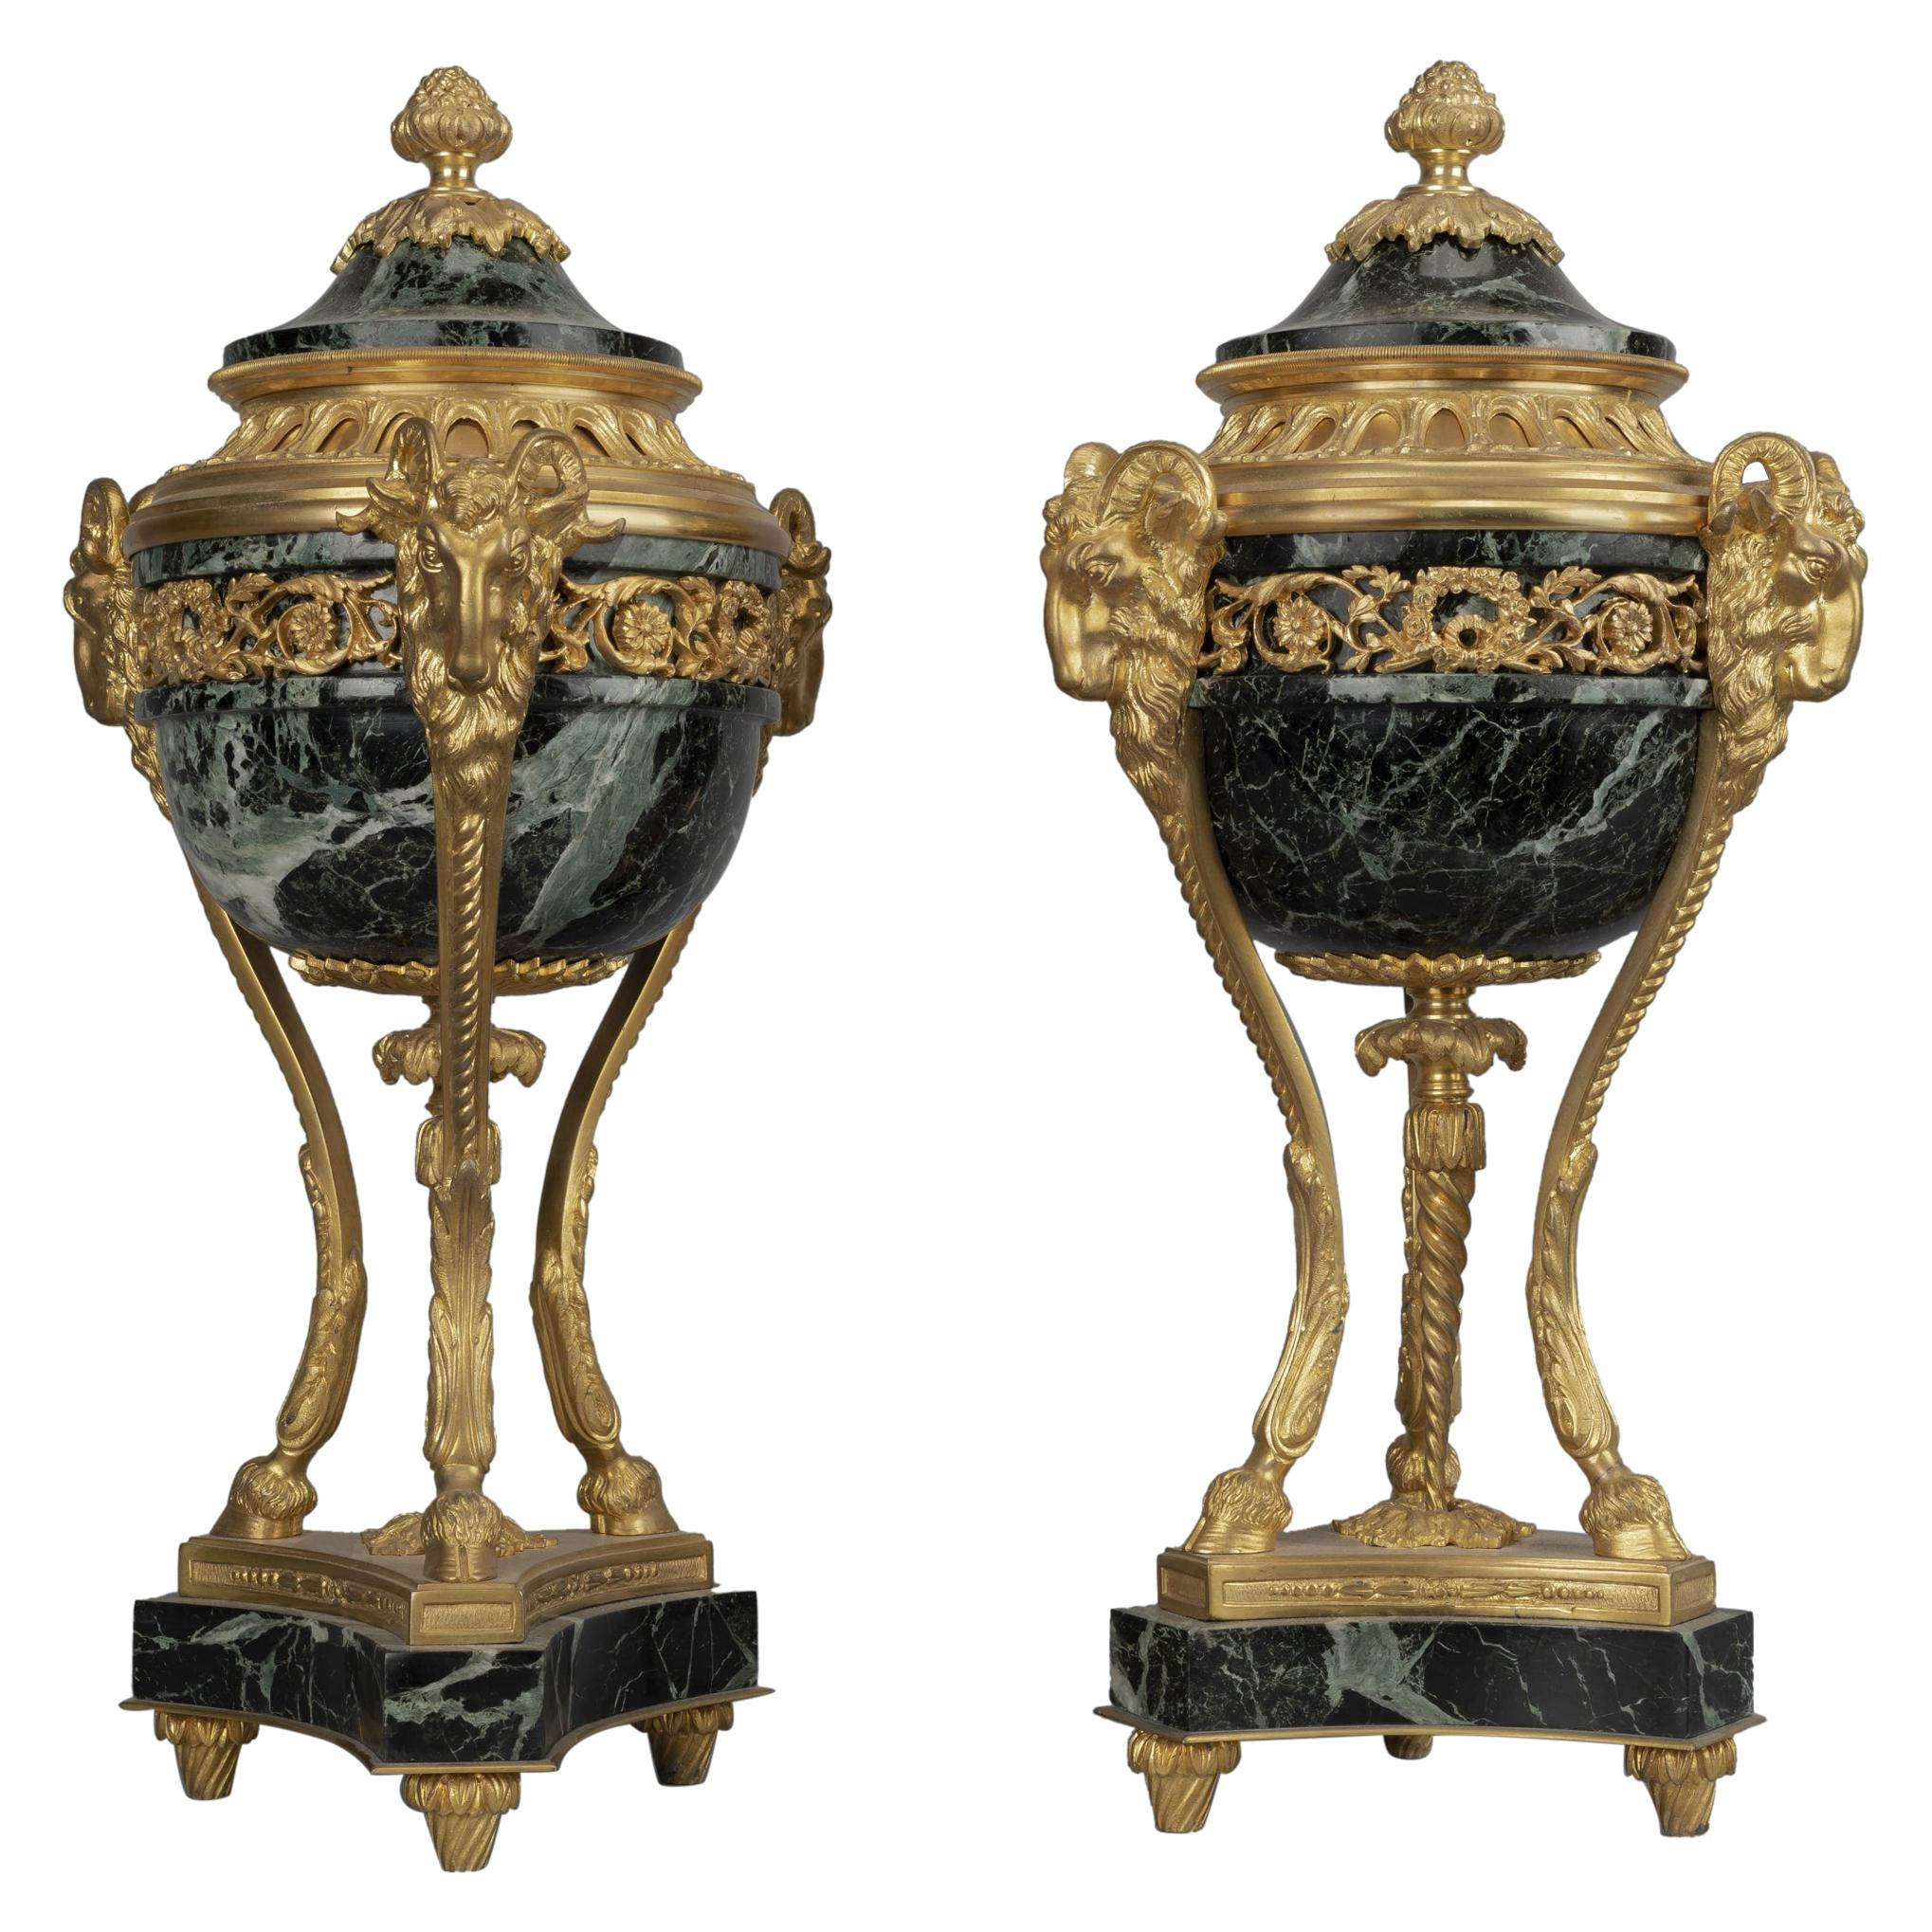 Pair of Louis XVI Style Gilt-Bronze and Marble Cassolettes